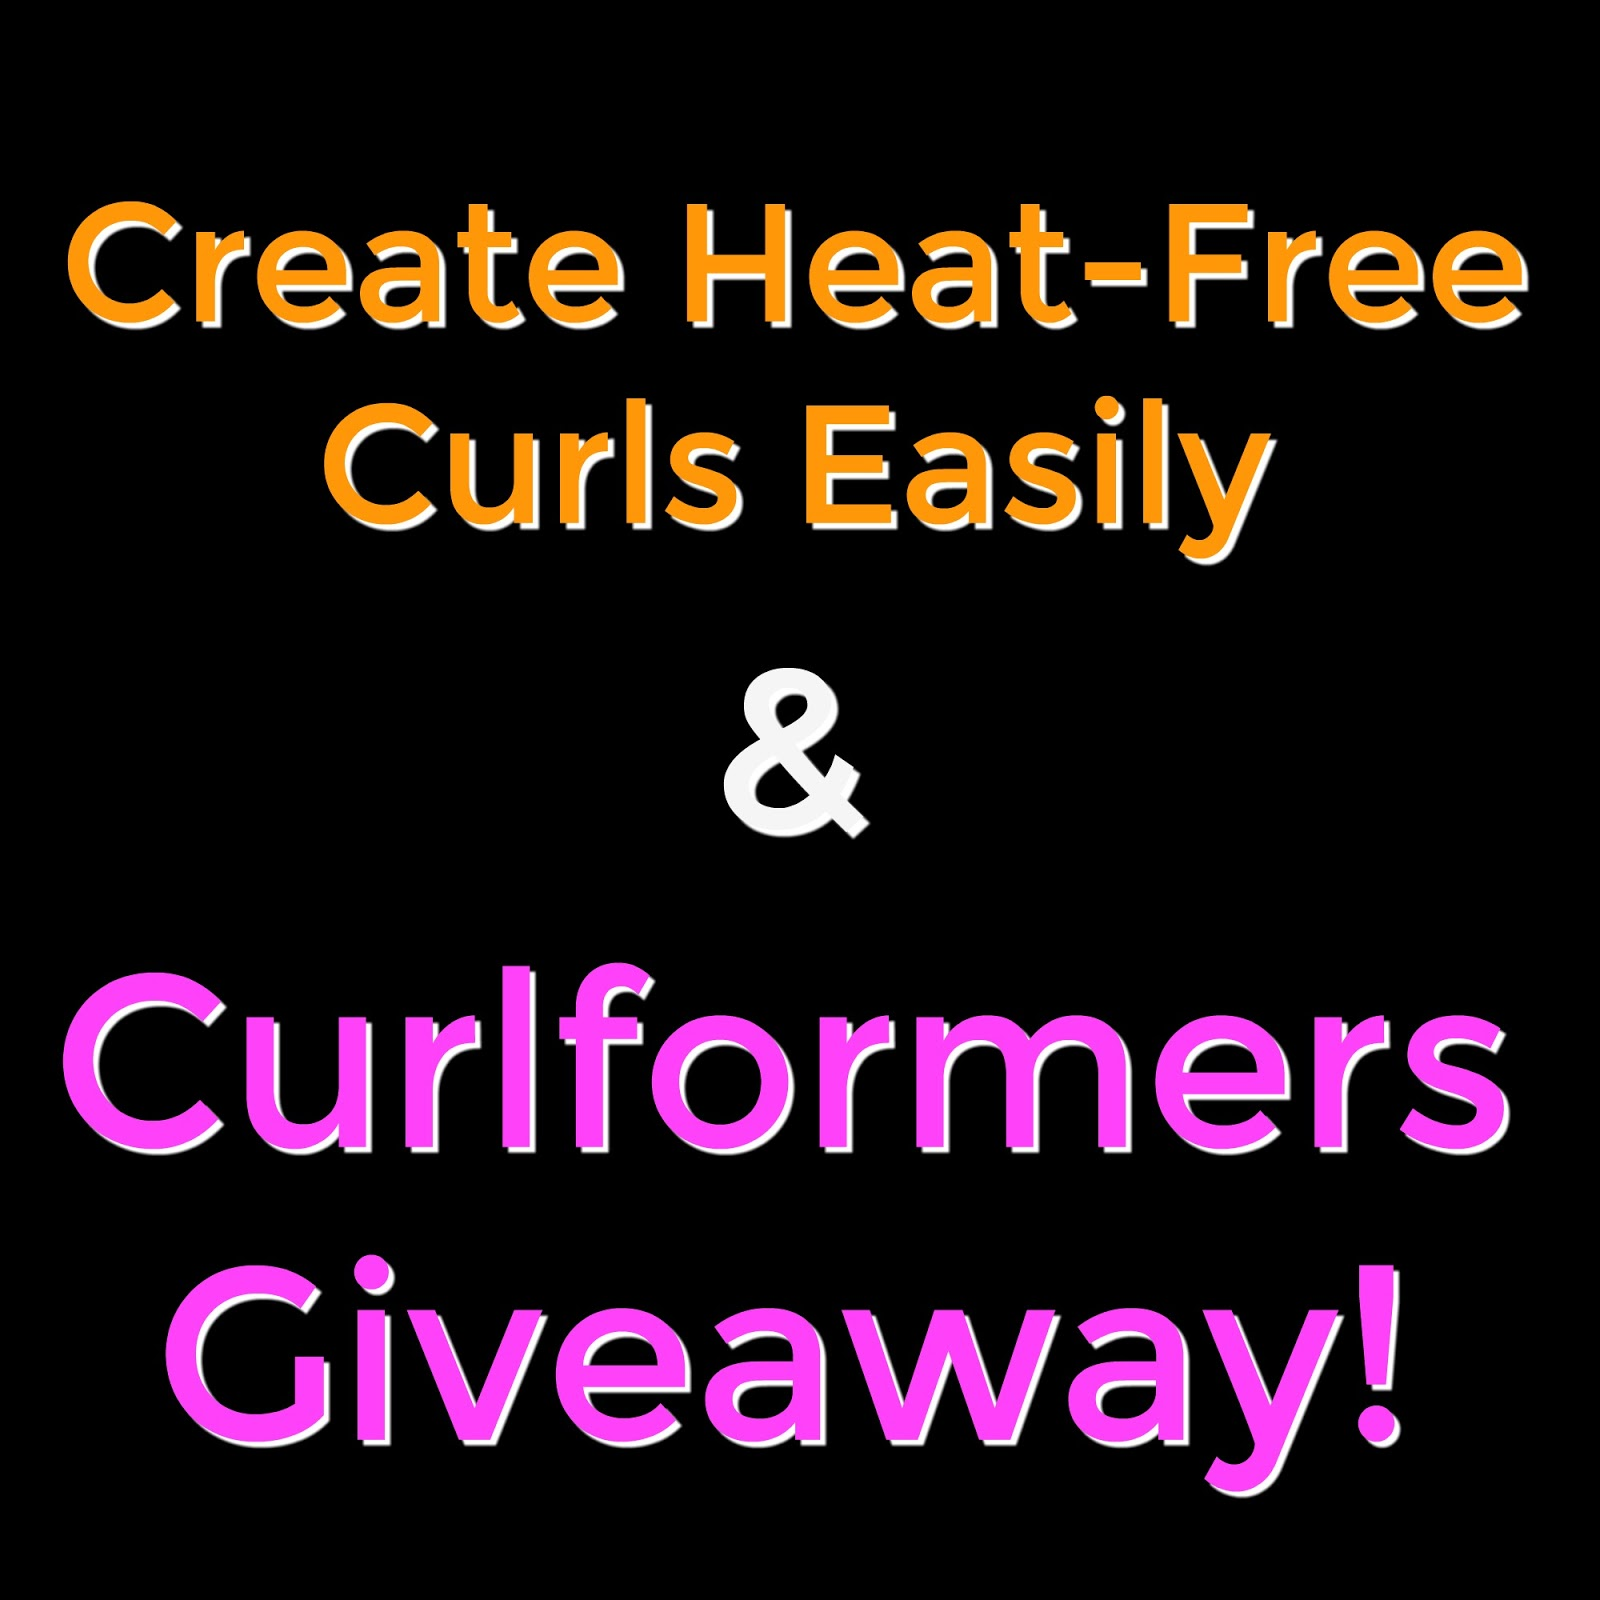 Create Heat-Free Curls Easily & Curlformers Set Giveaway!